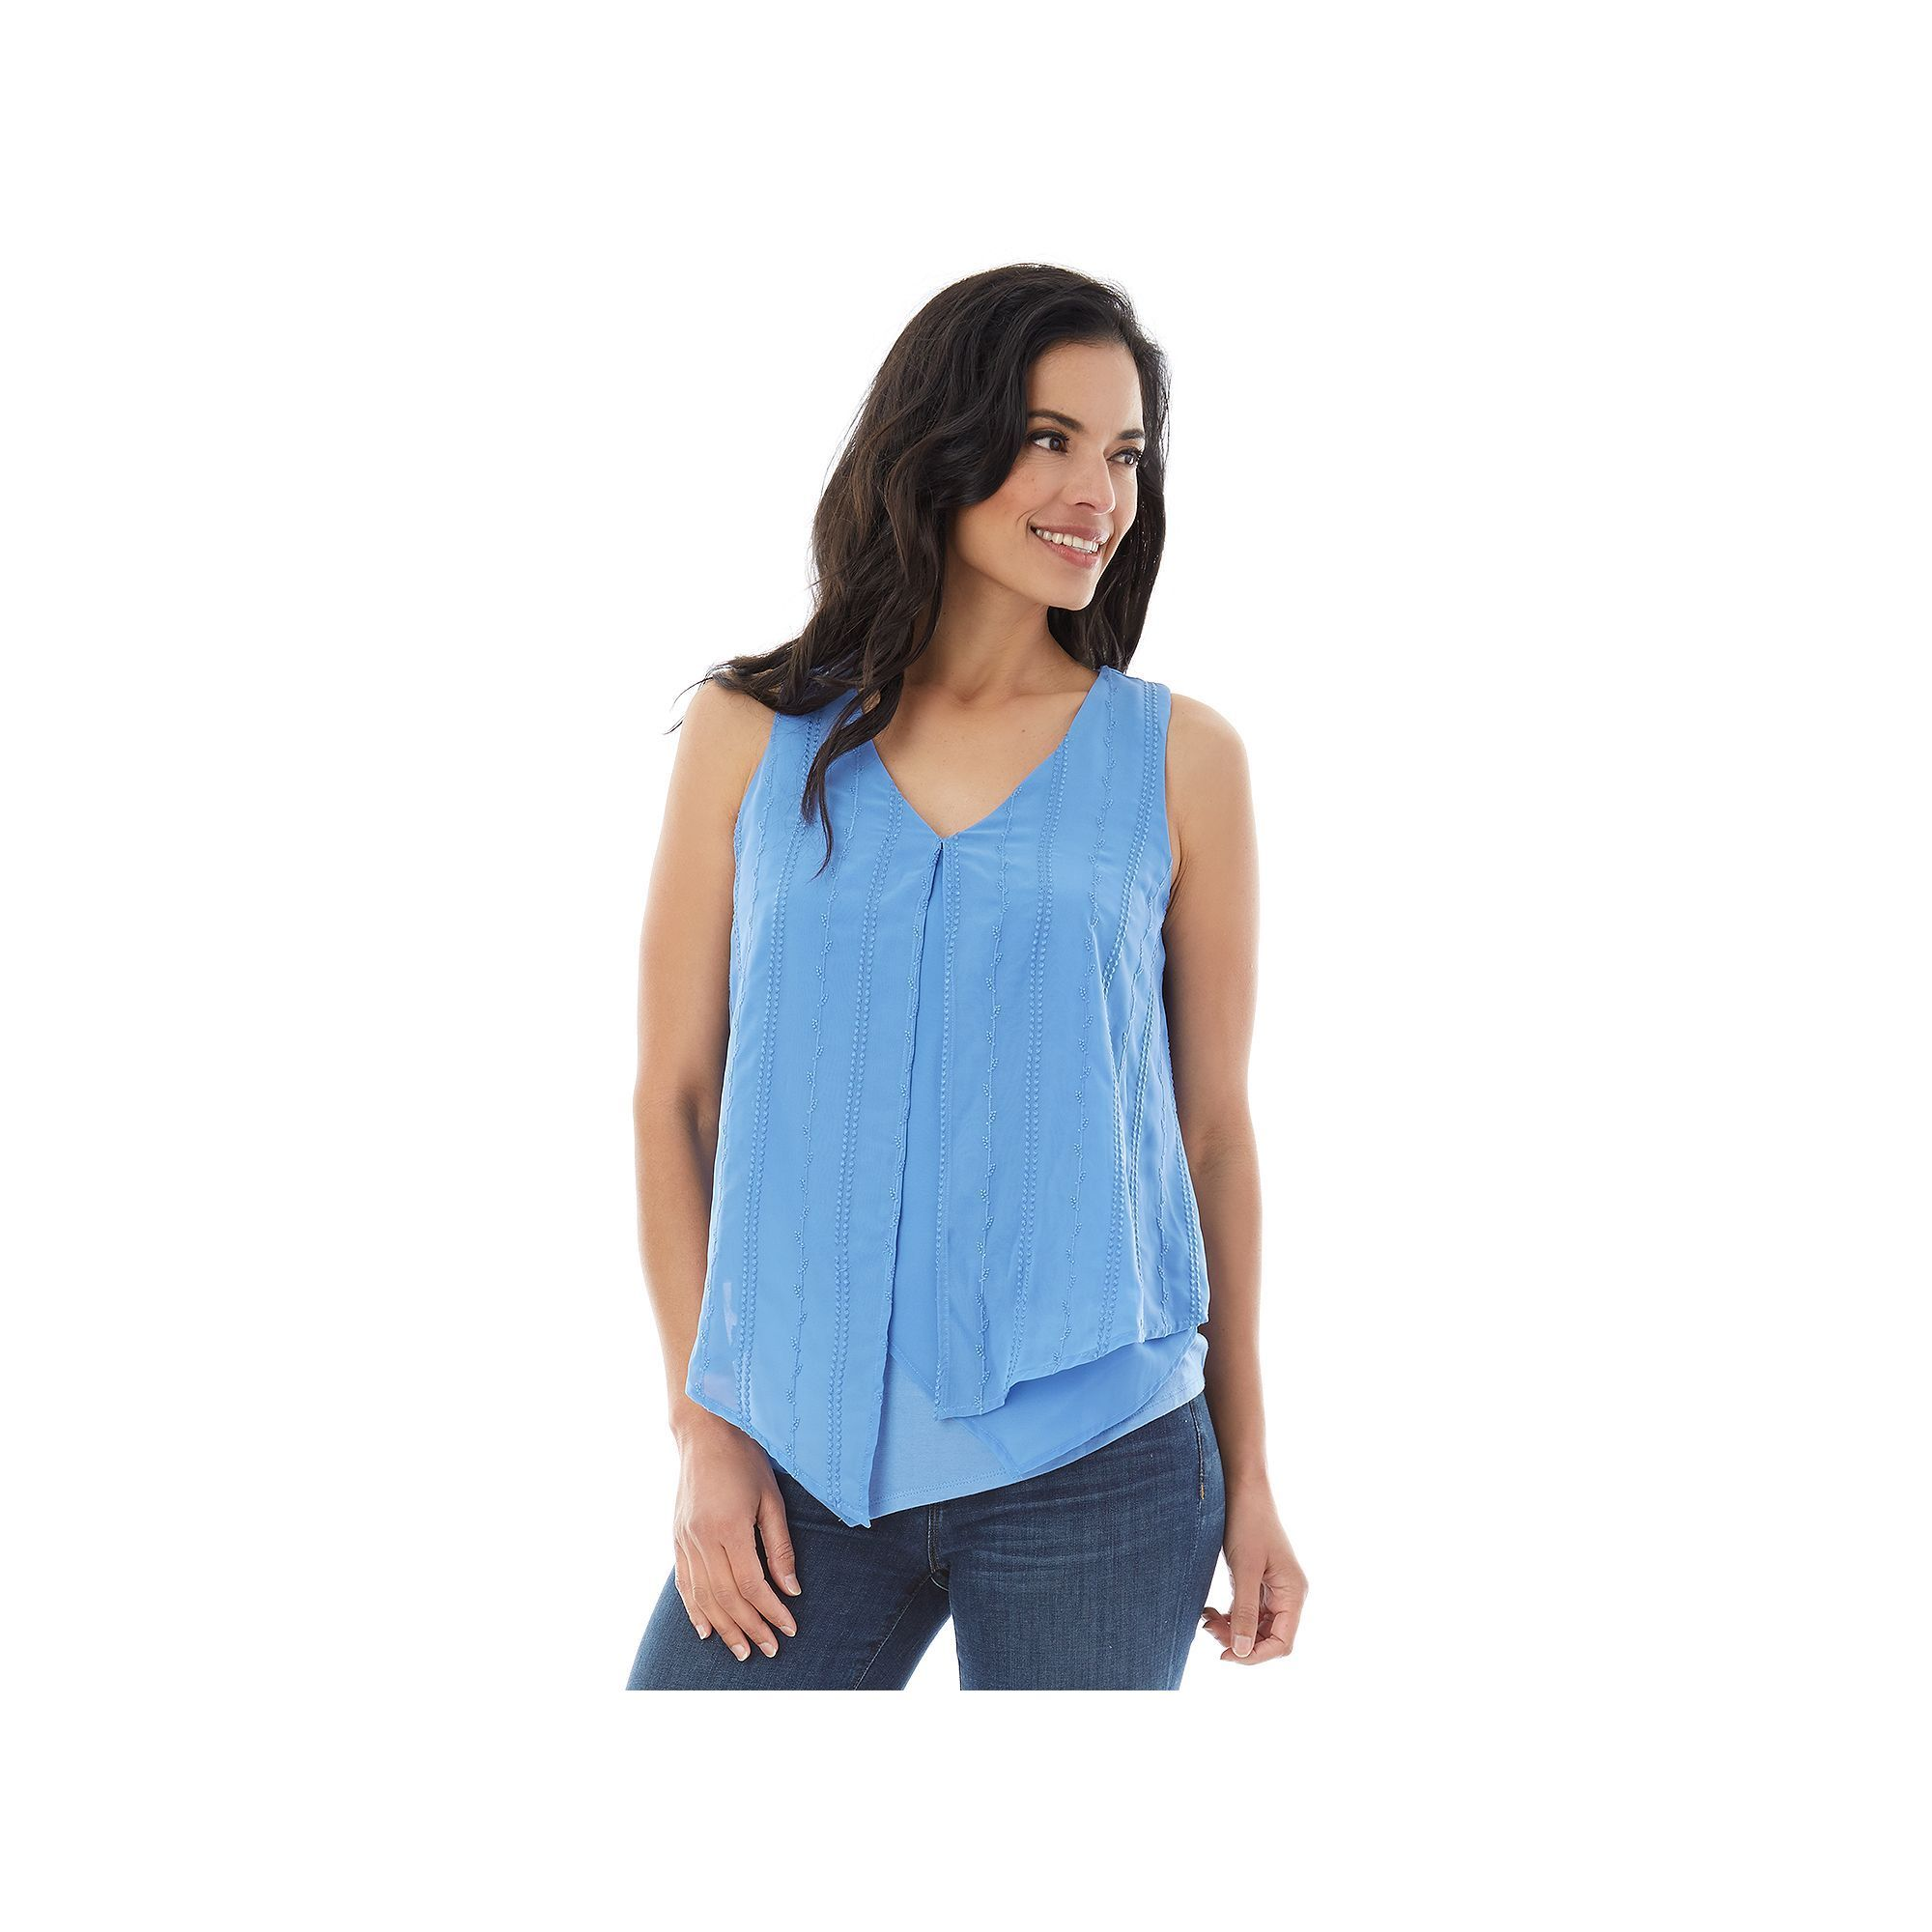 Women's' AB Studio Embroidered Layered Top, Size: Xlrg Av/Rg, Med Blue